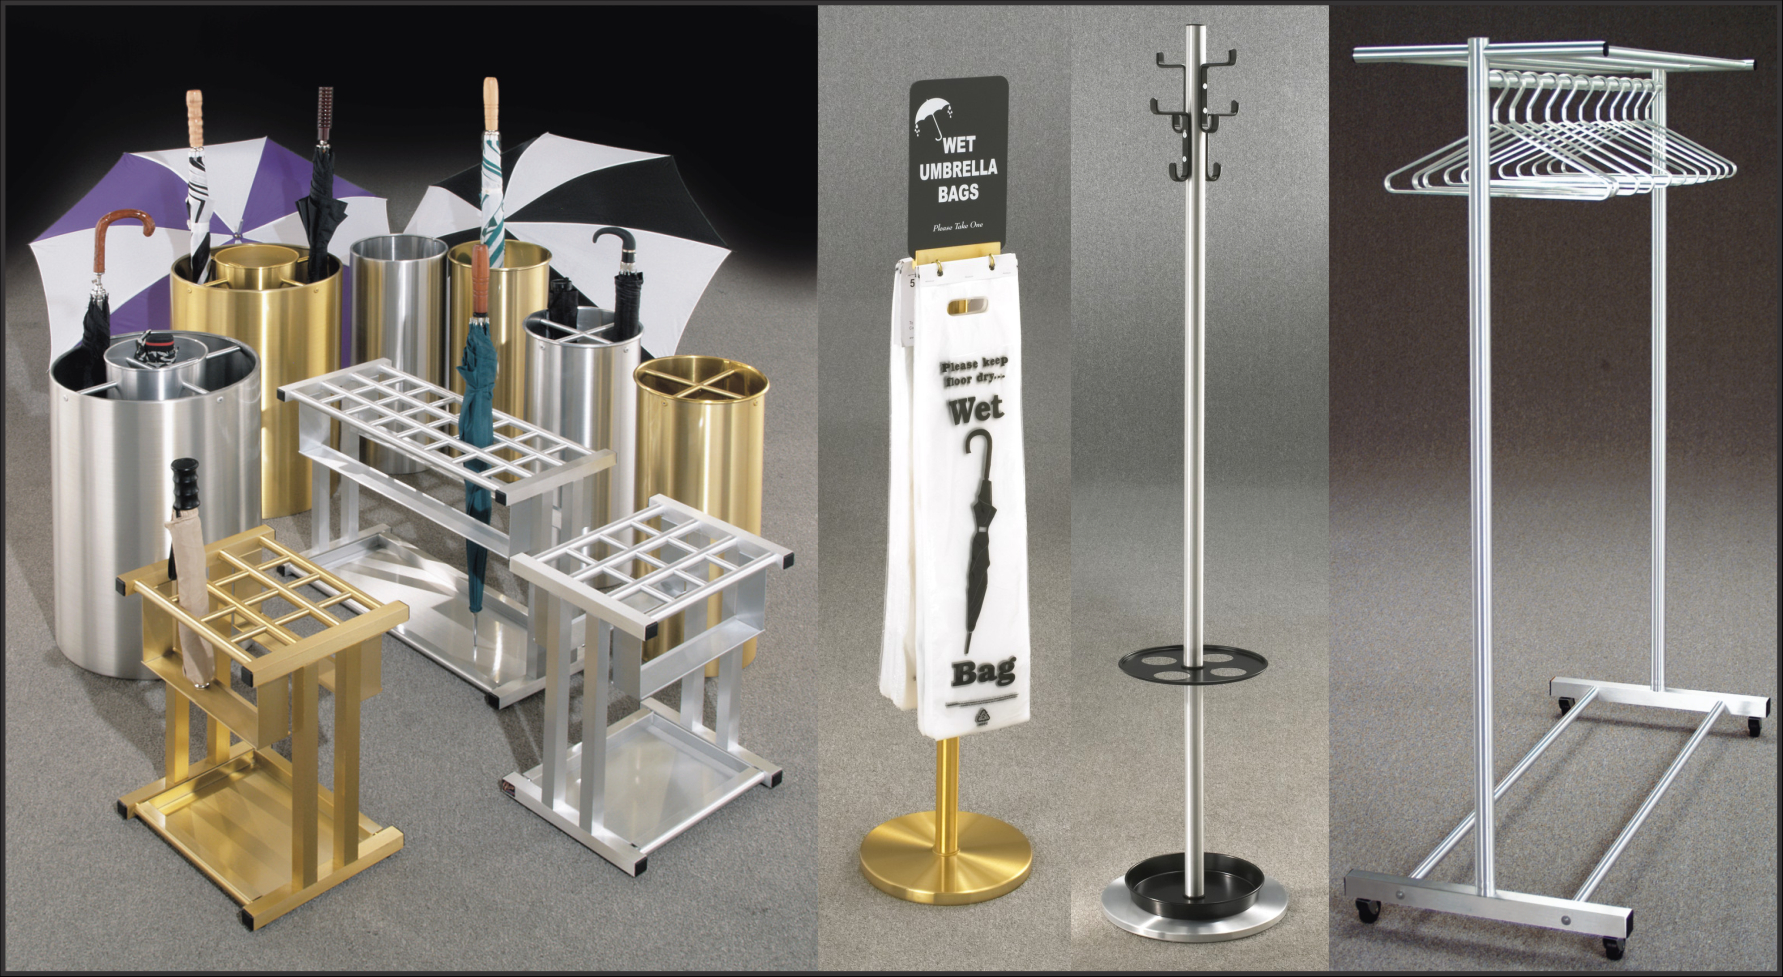 what are the advantages of having wet umbrella bag holders and umbrella stands in your facility yearround